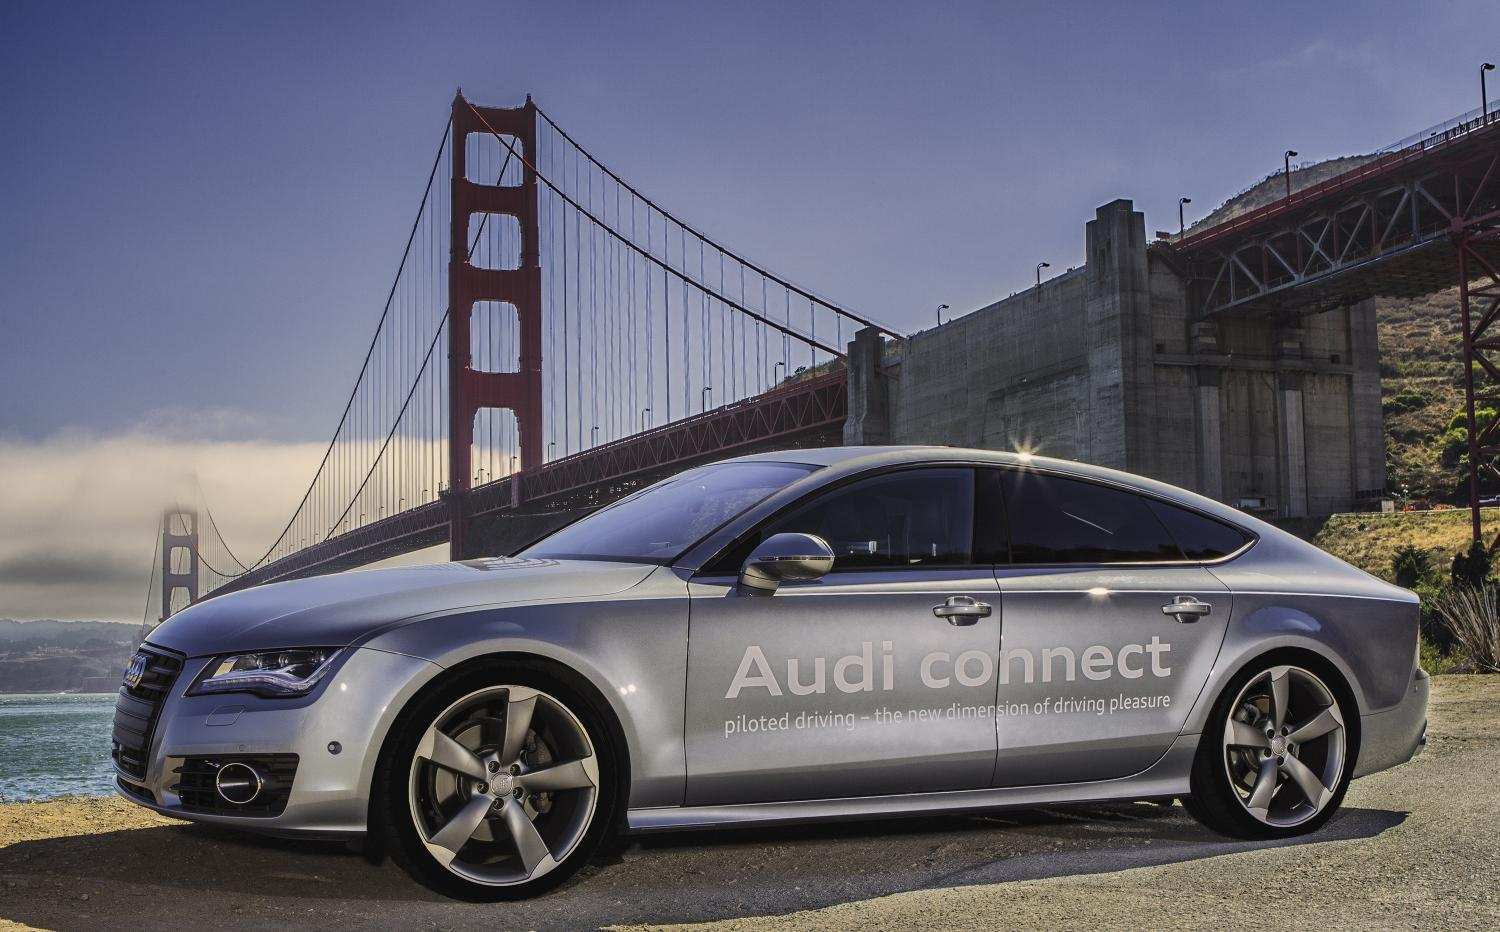 92 The Best Audi 2020 Self Driving Car Exterior And Interior